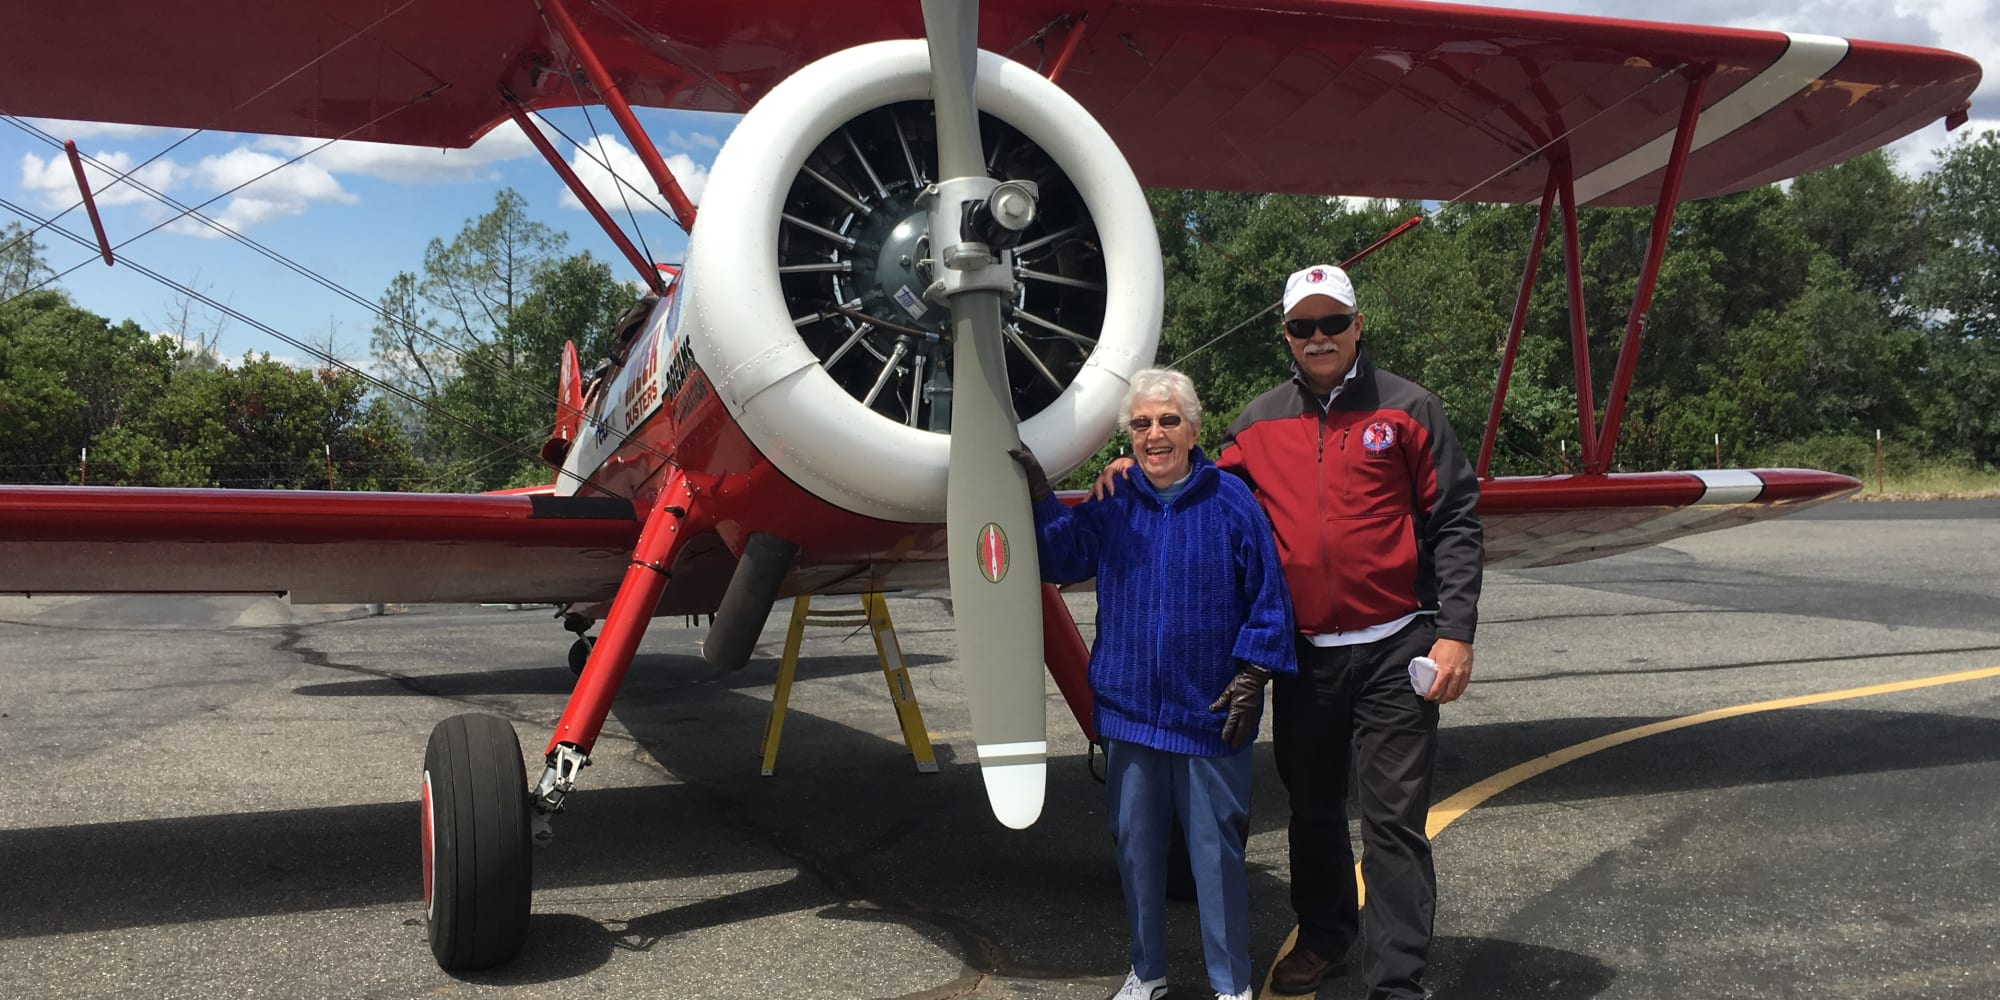 Residents of Alexis Estates Gracious Retirement Living pose by an airplane in Allen, Texas